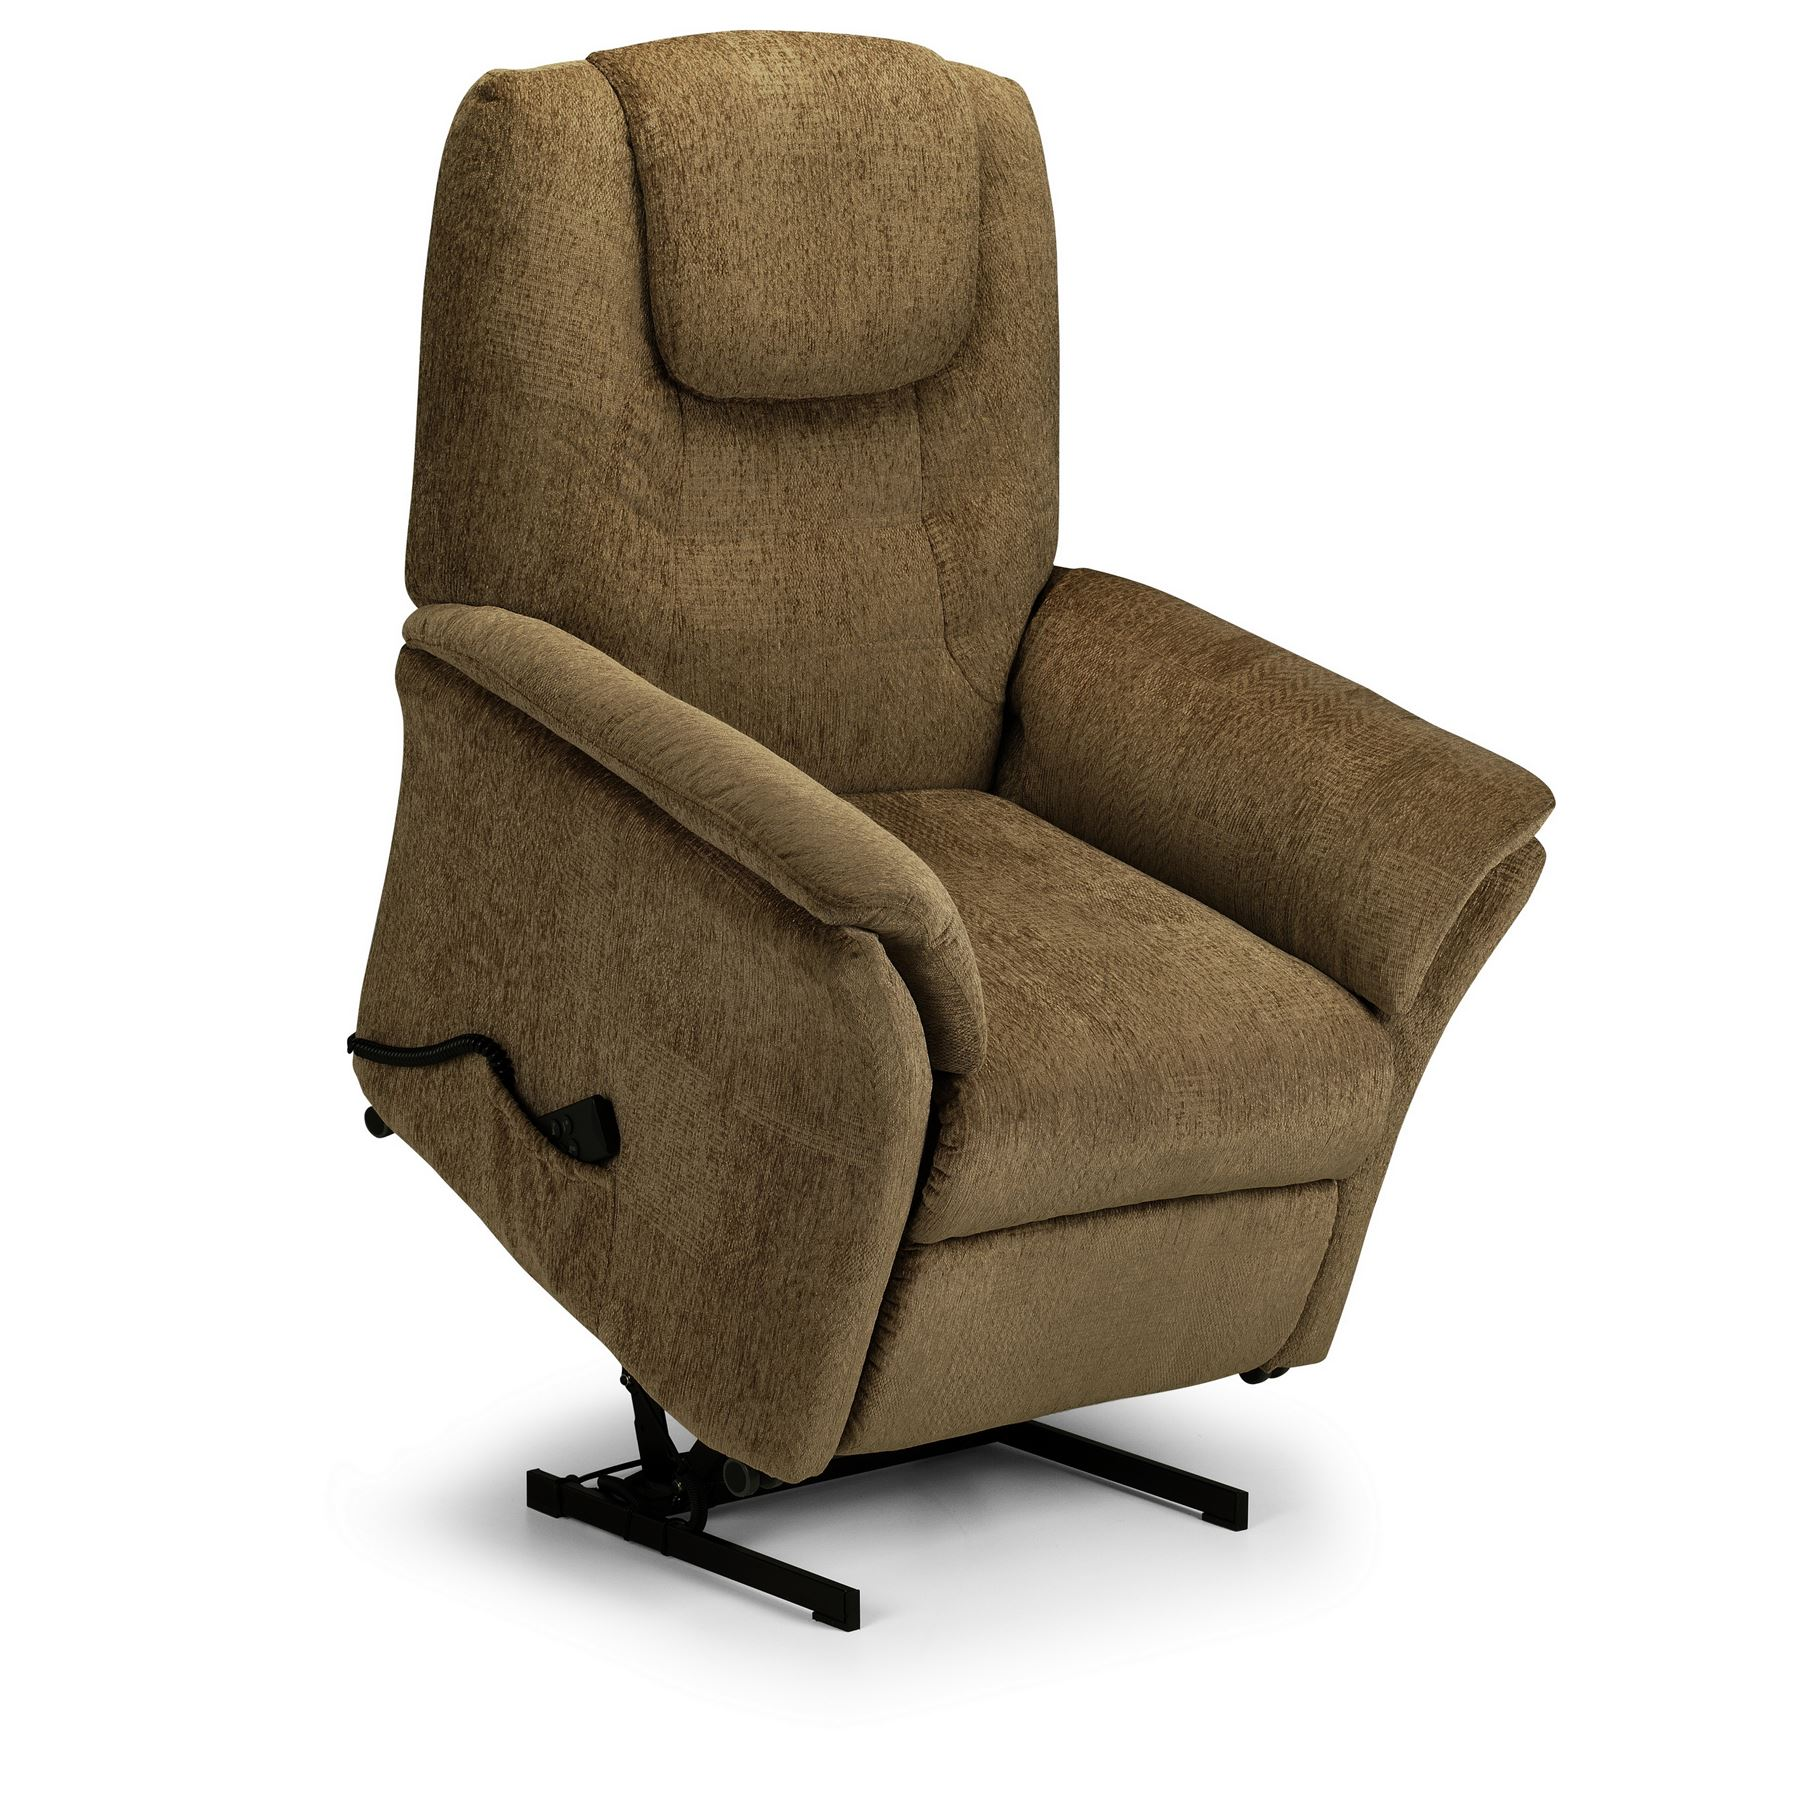 Julian Bowen Riva Electric rise recliner Chair Mushoom Chenille Fabric